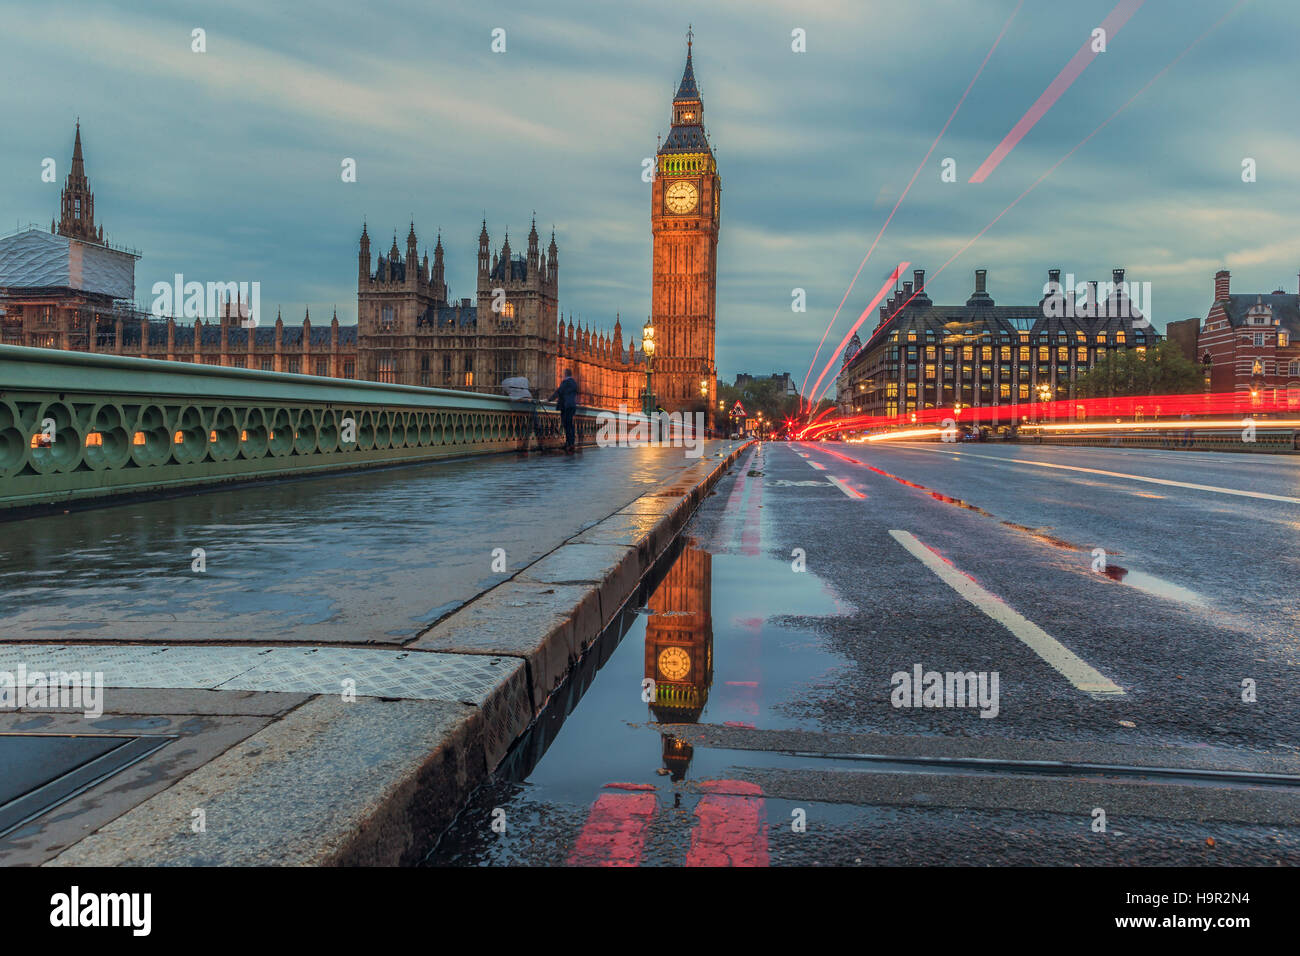 A reflection of Big Ben in a puddle on Westminster Bridge at dusk. - Stock Image